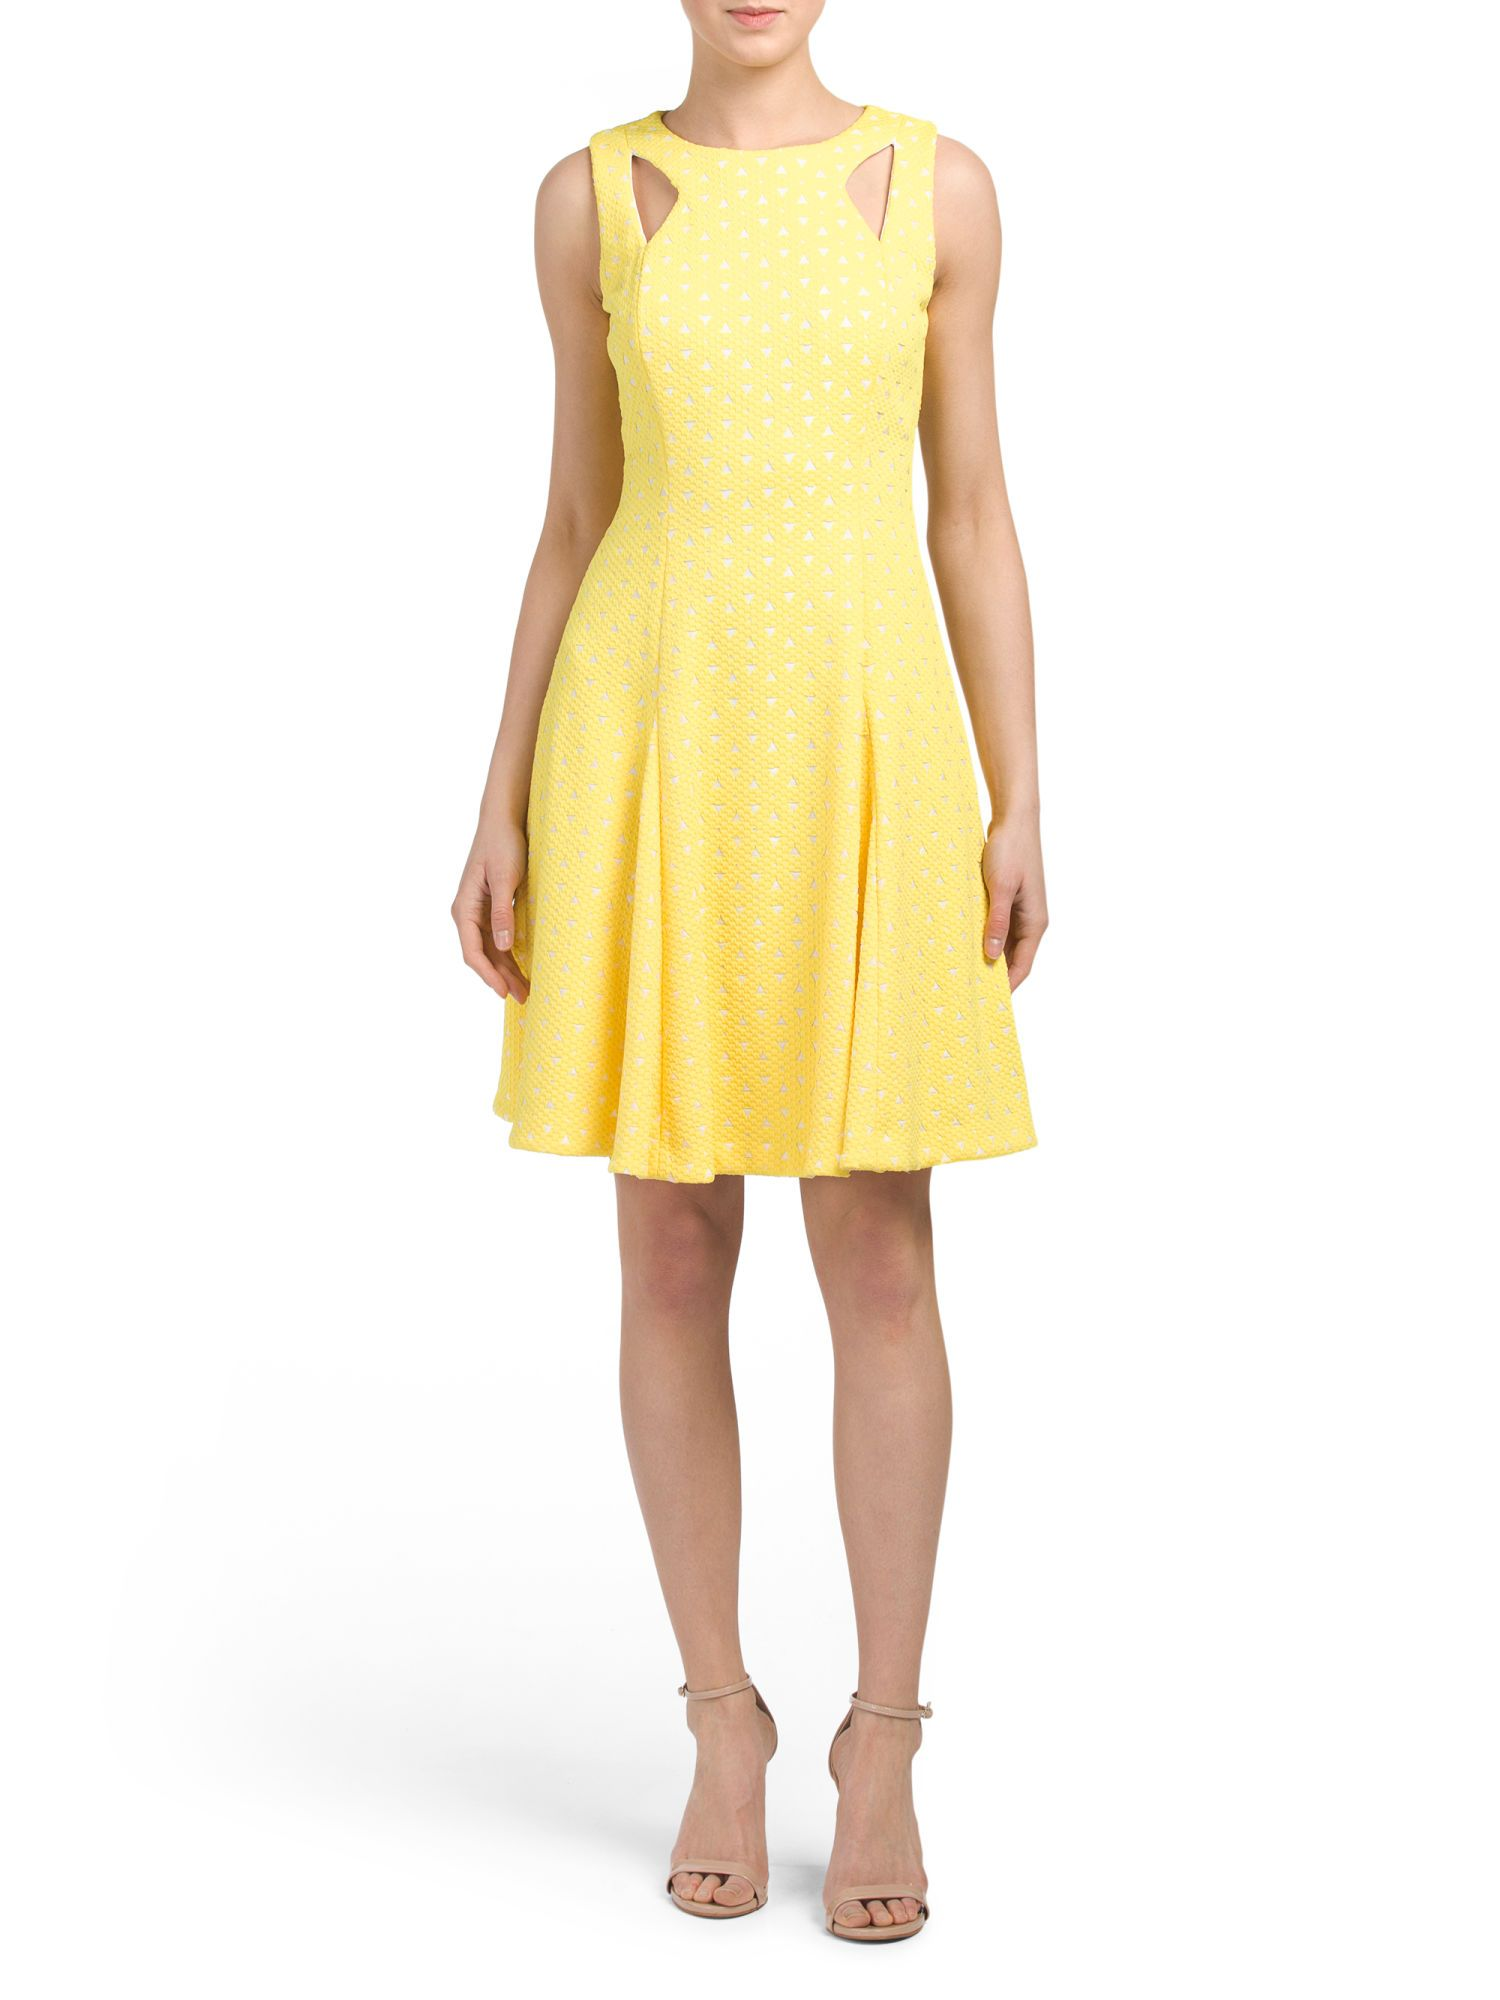 TAHARI BY ASL Cut Out Fit And Flare Dress $39.99